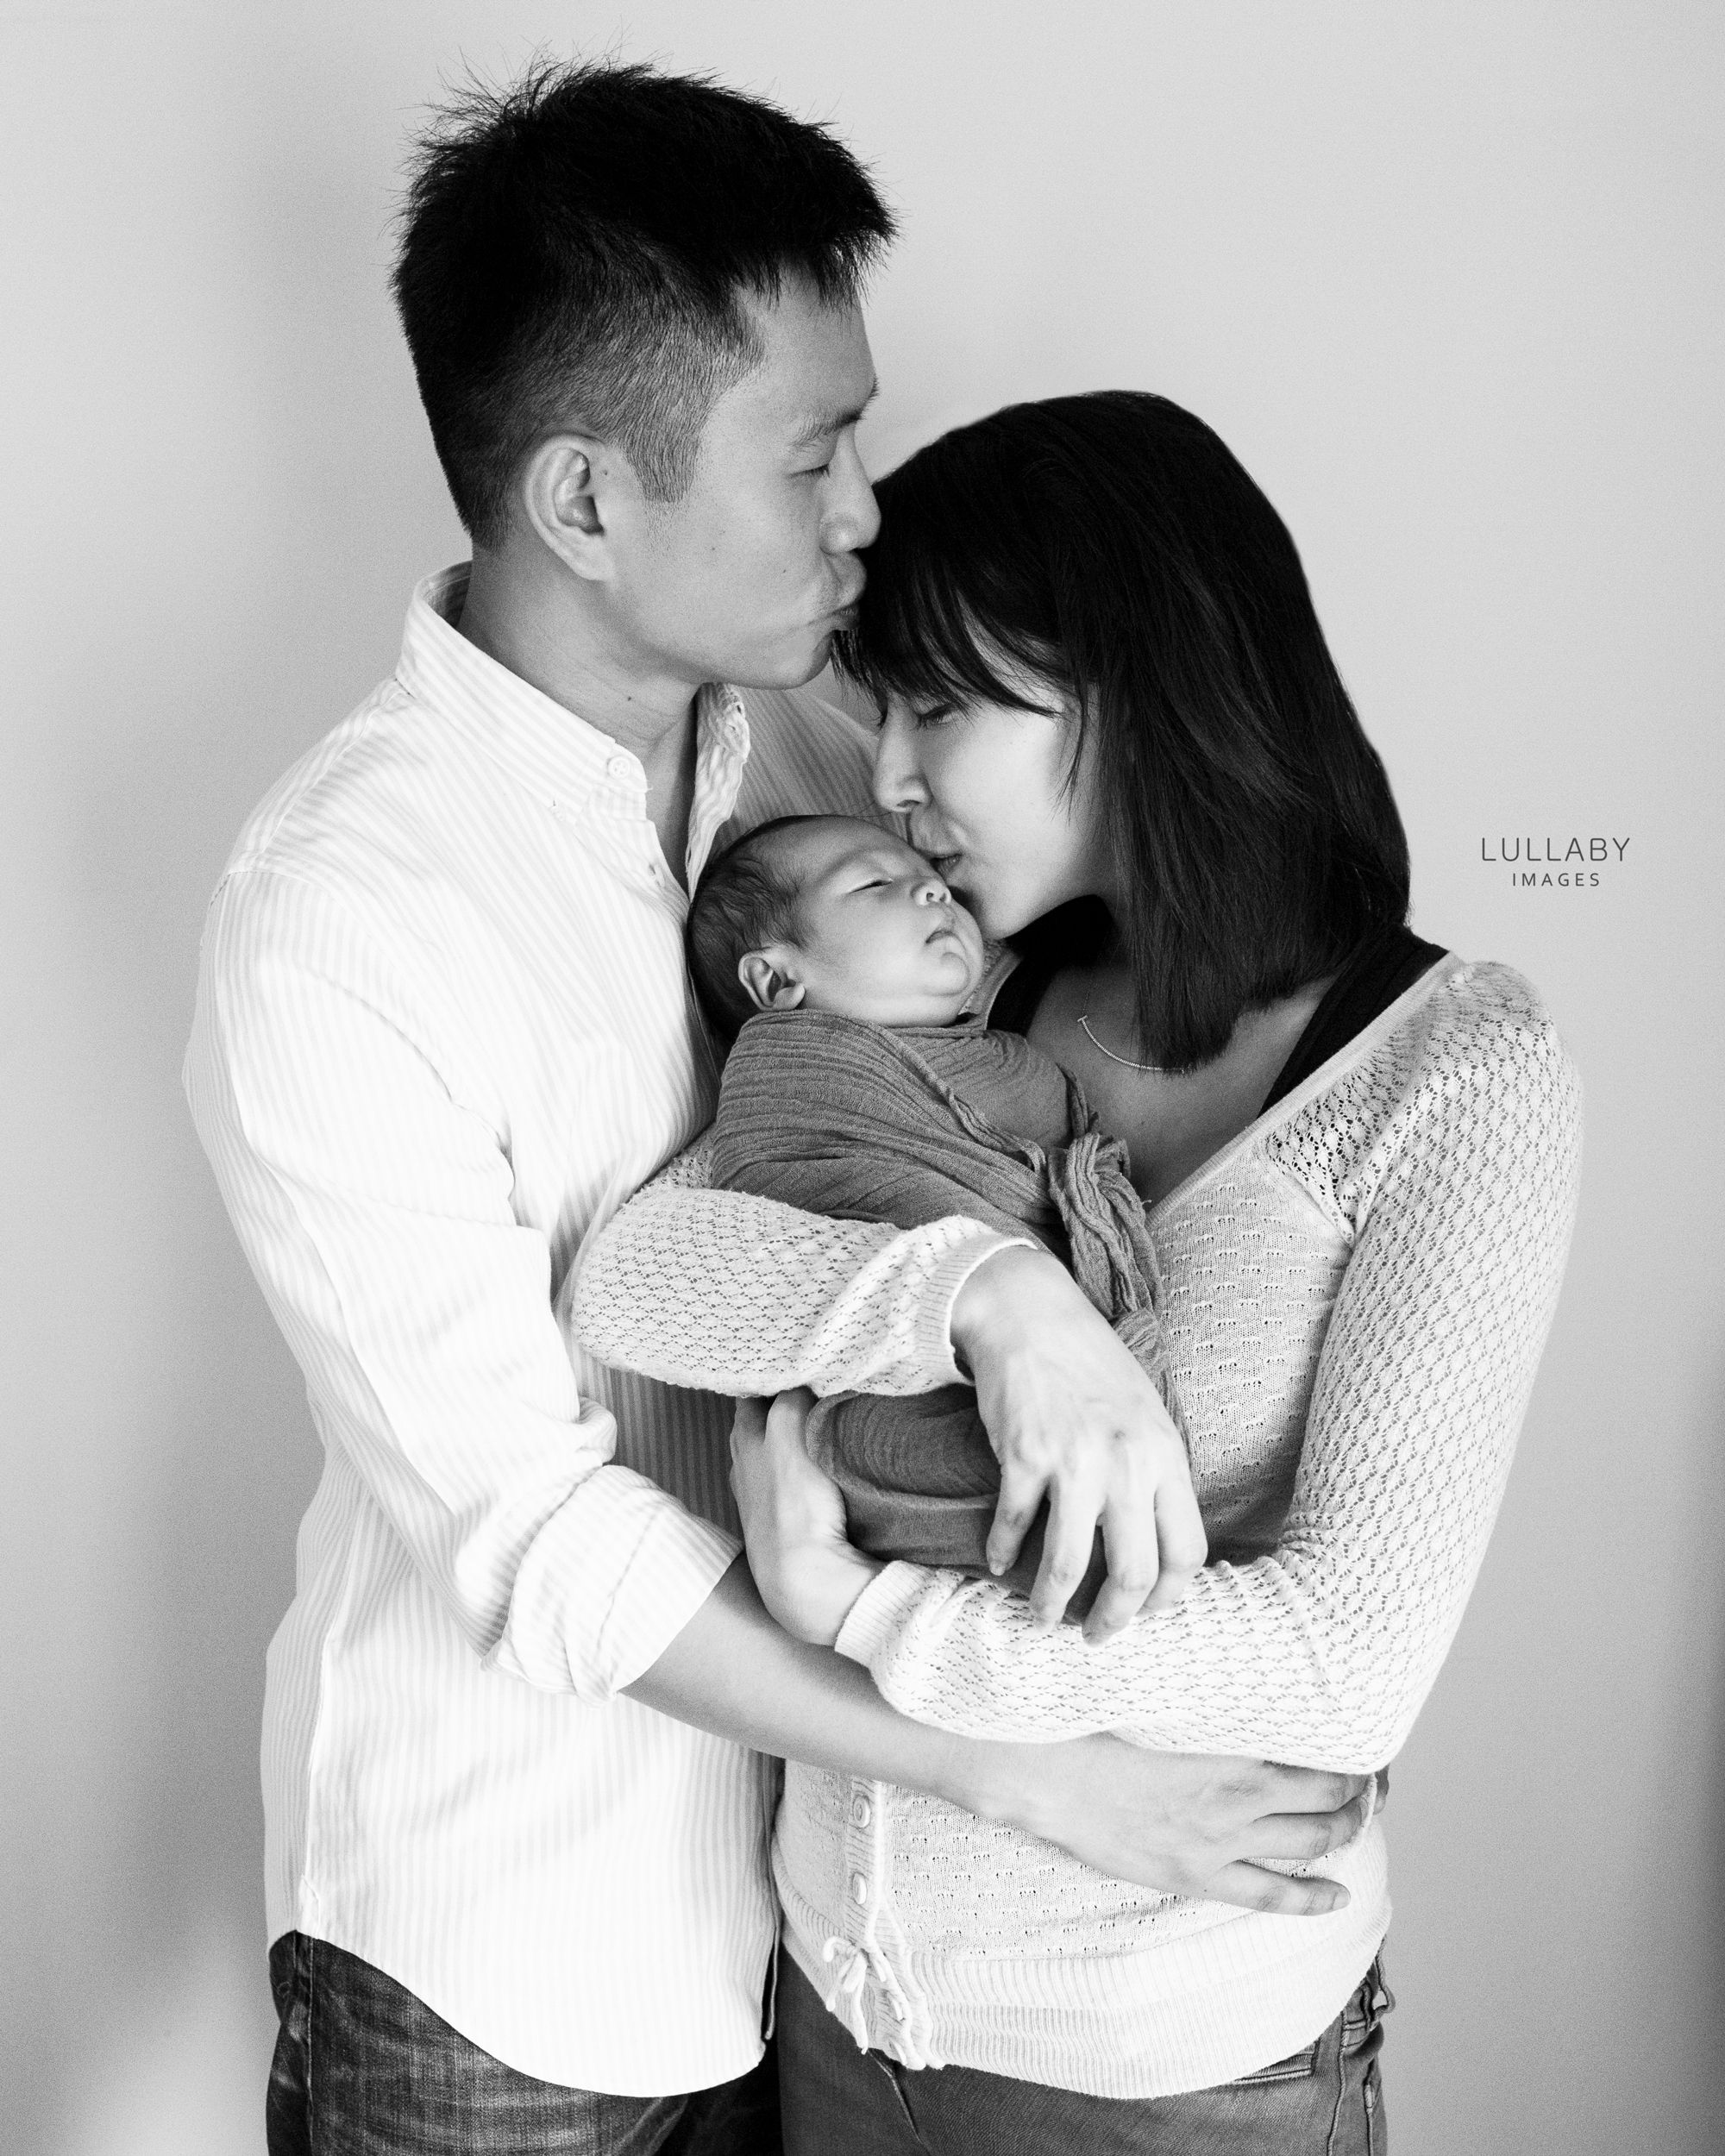 Hong Kong family newborn photographer Lullaby Images